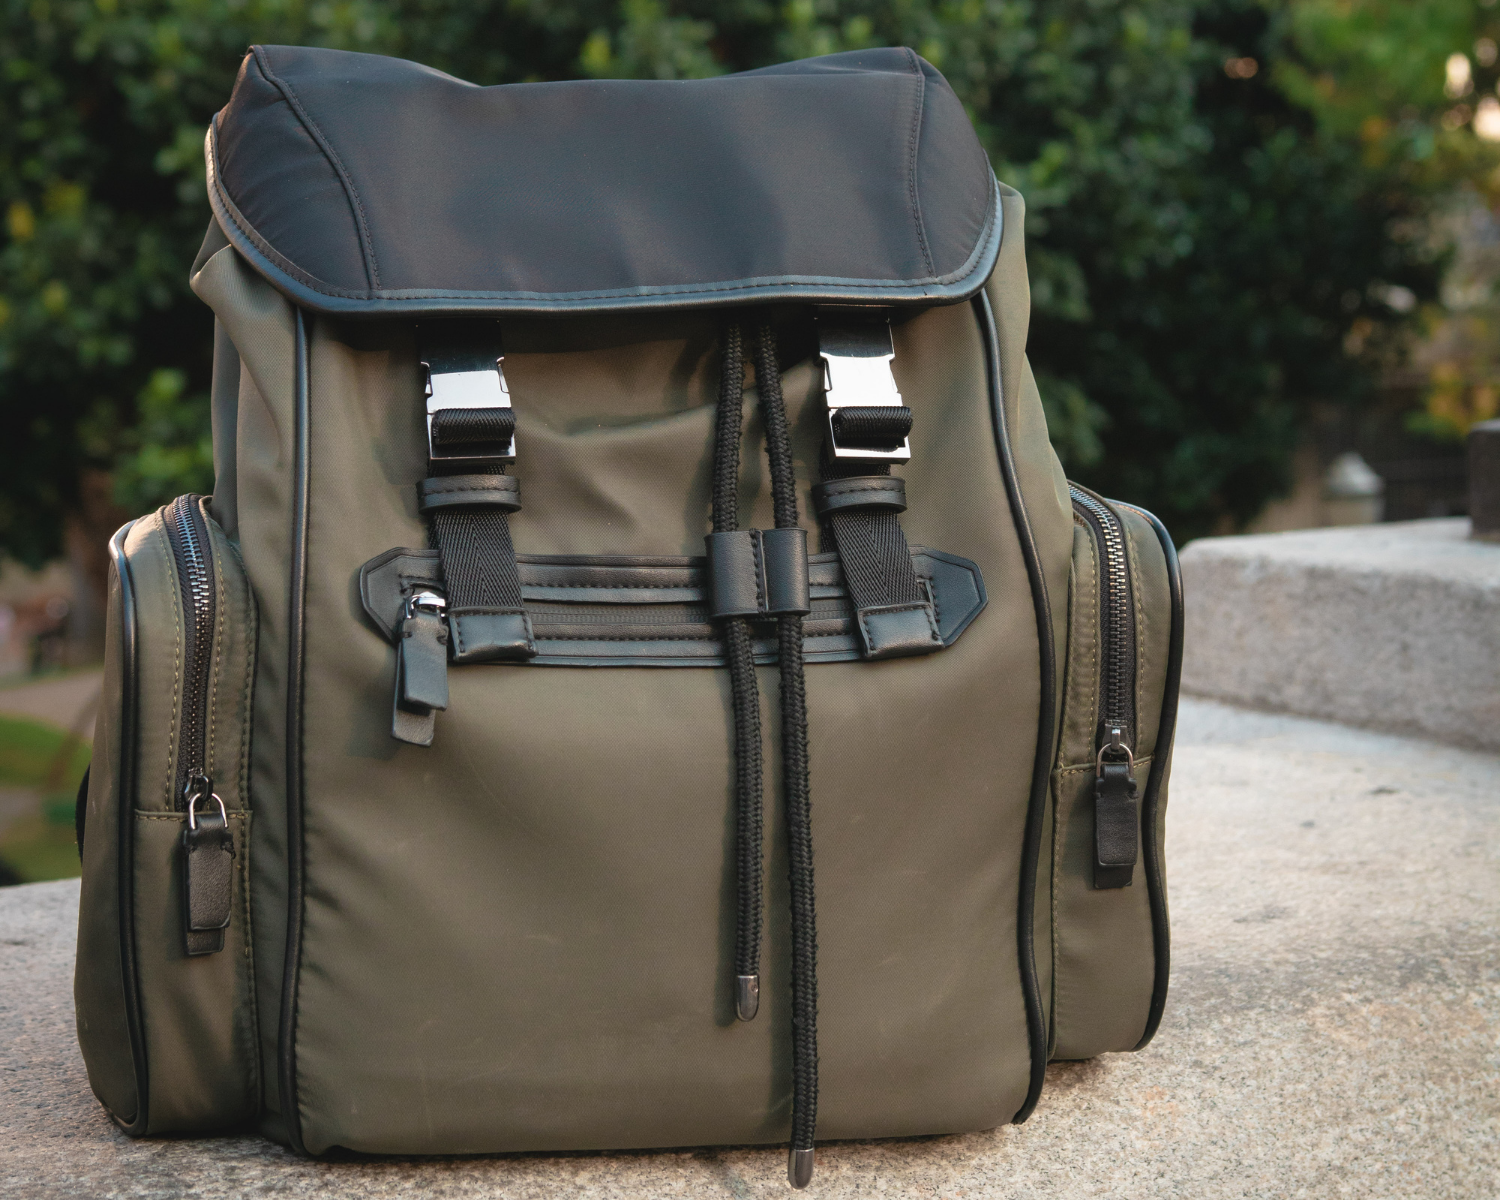 Find the right diaper bag for you.